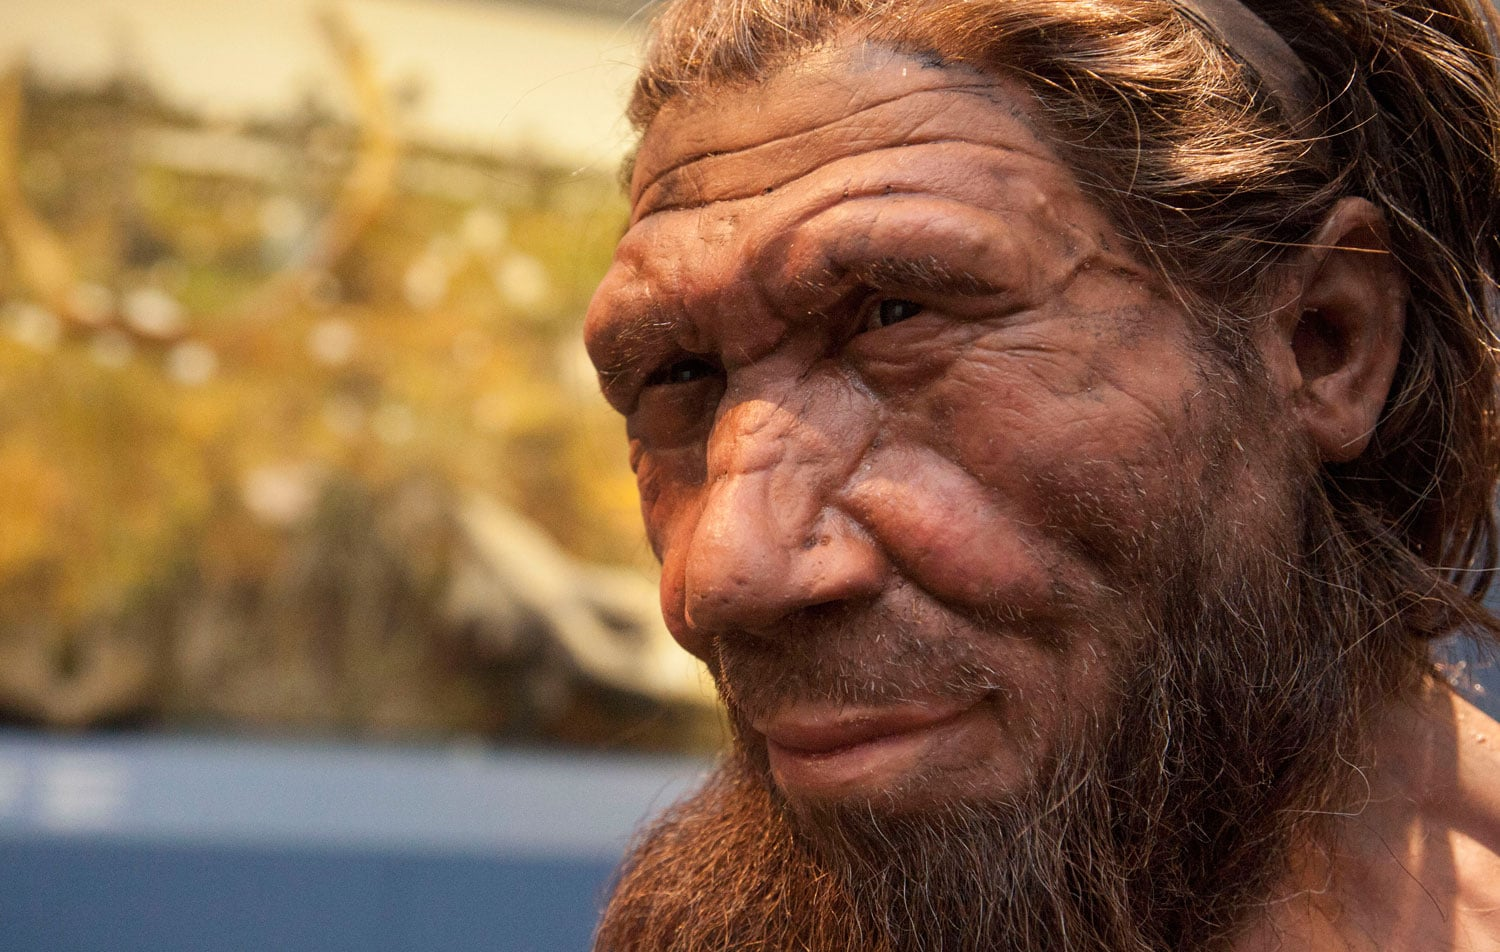 1. Britain: One Million Years of the Human Story, until 28 September 2014 - Natural History Museum, London. 50% off with National Art Pass